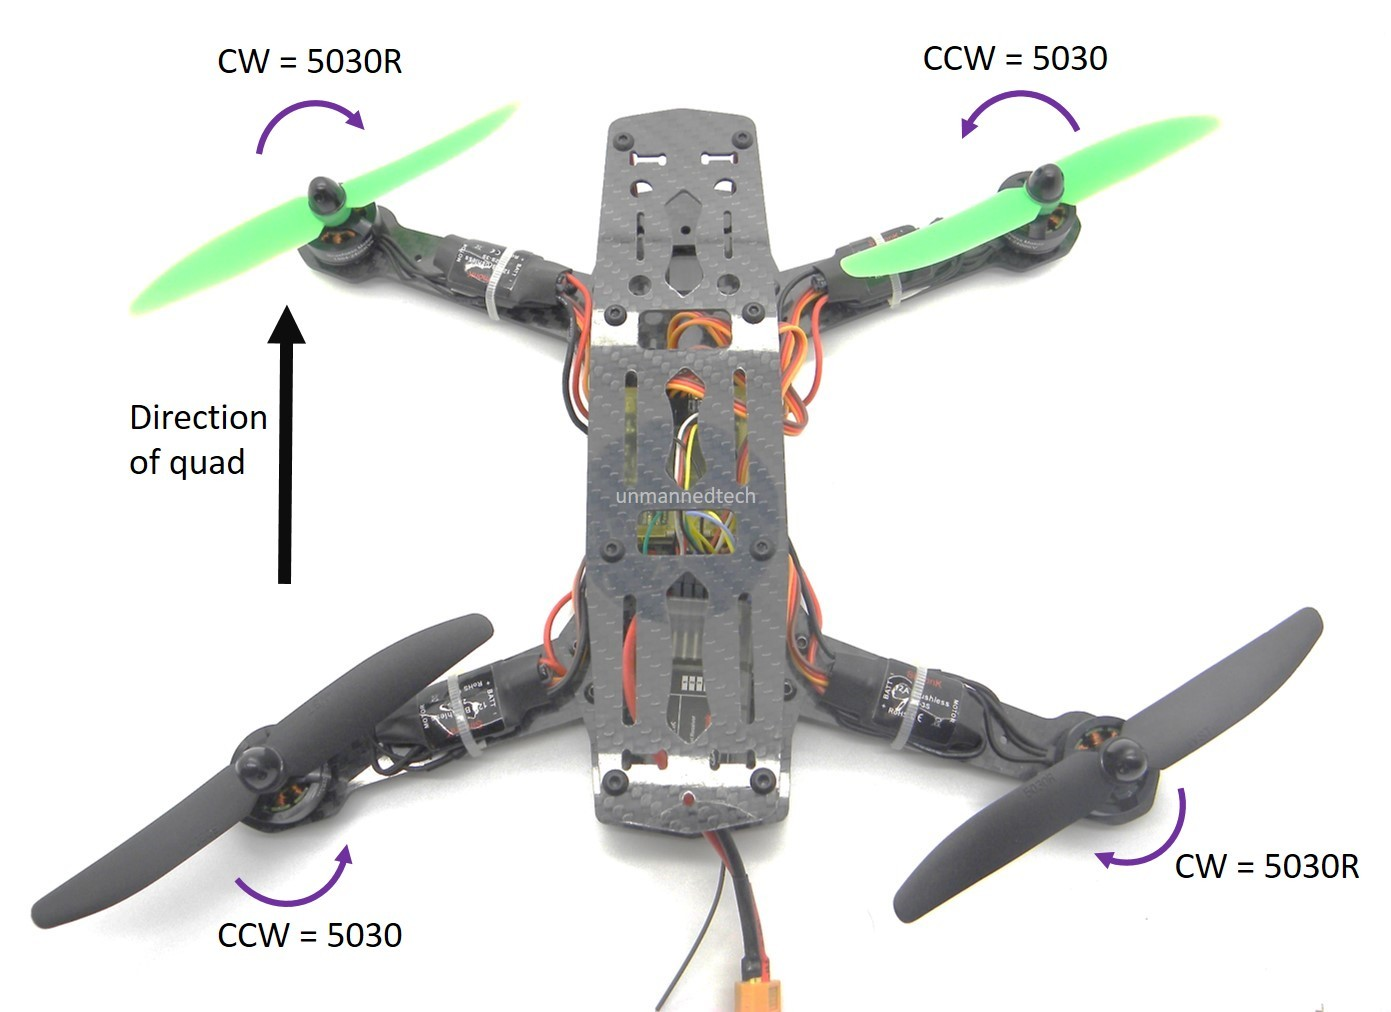 QAV ZMR 250 embly Build Guide - Guides - DroneTrest Racing Drone Wiring Diagram on